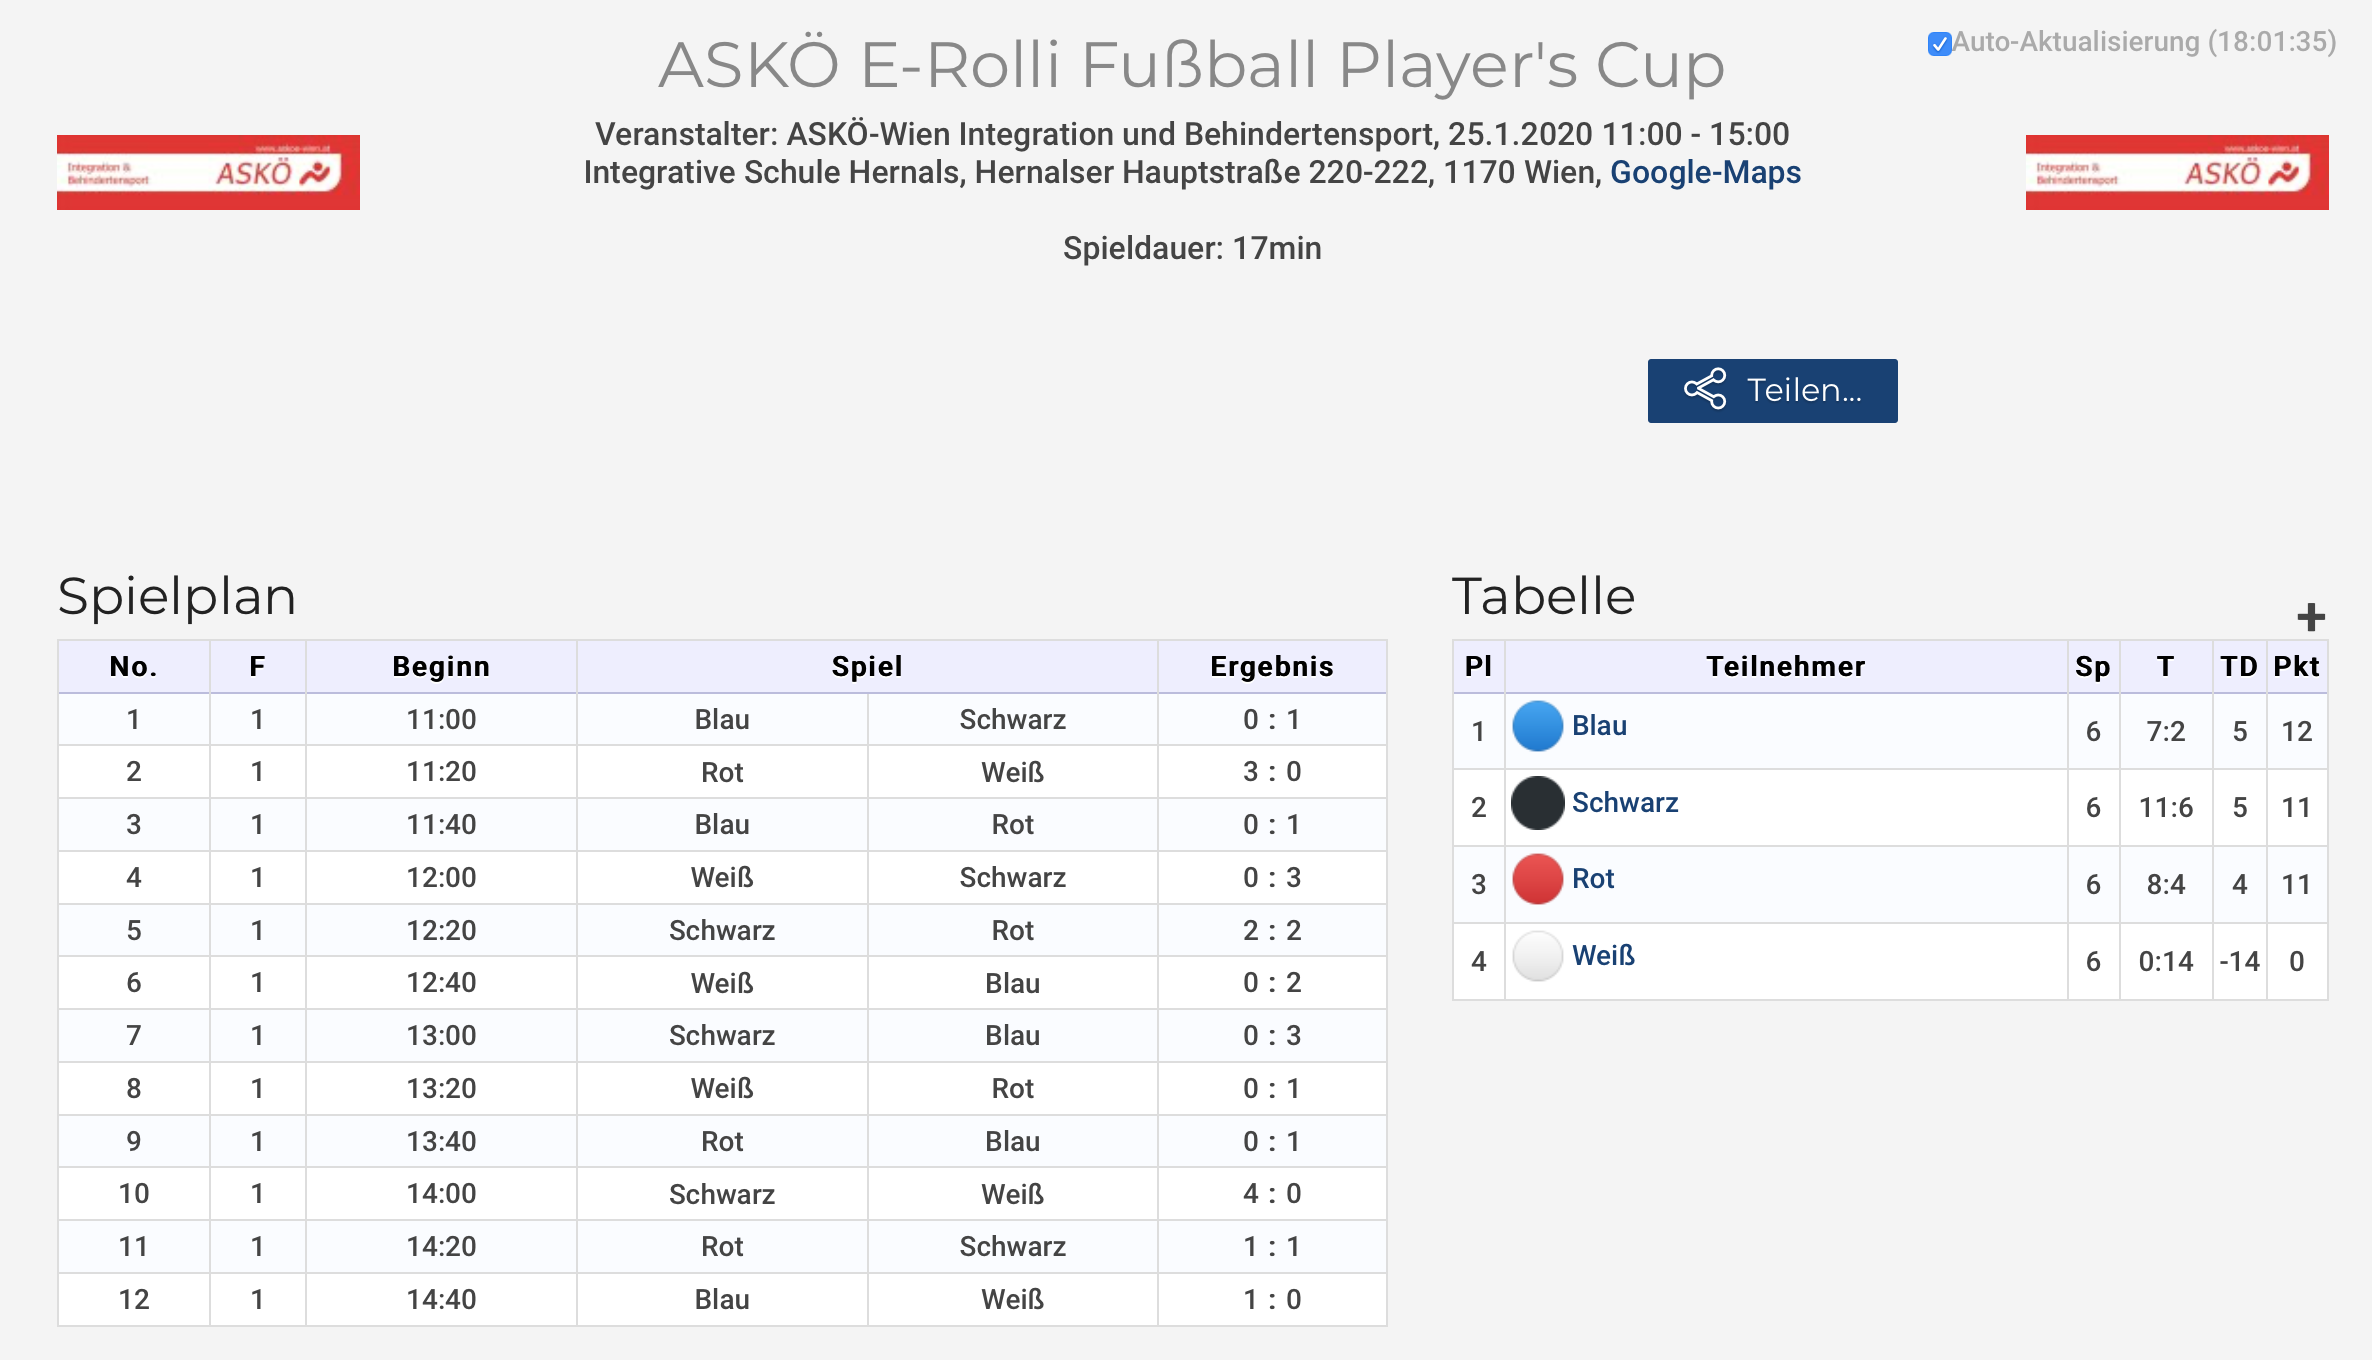 Tabelle beim ASKÖ Player's CUP am 25. Jänner 2020 in Wien